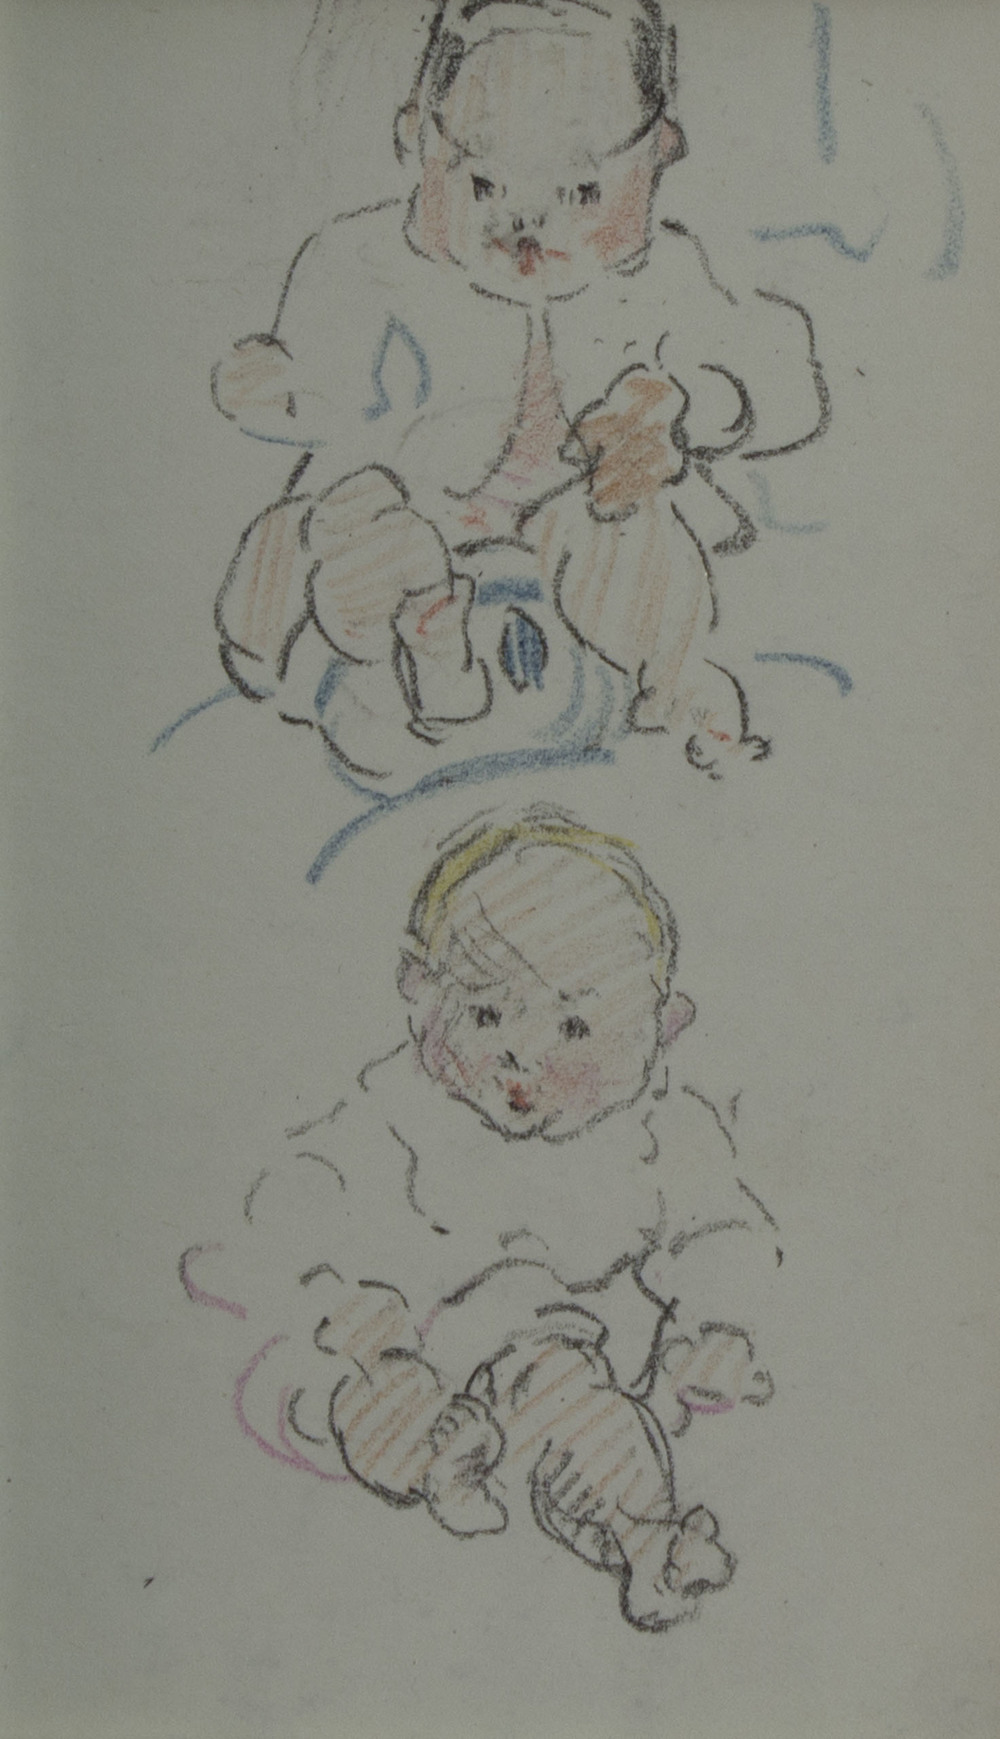 Mary Swanzy 'Two Babies' pencil and crayon on paper 14x8cm.jpg